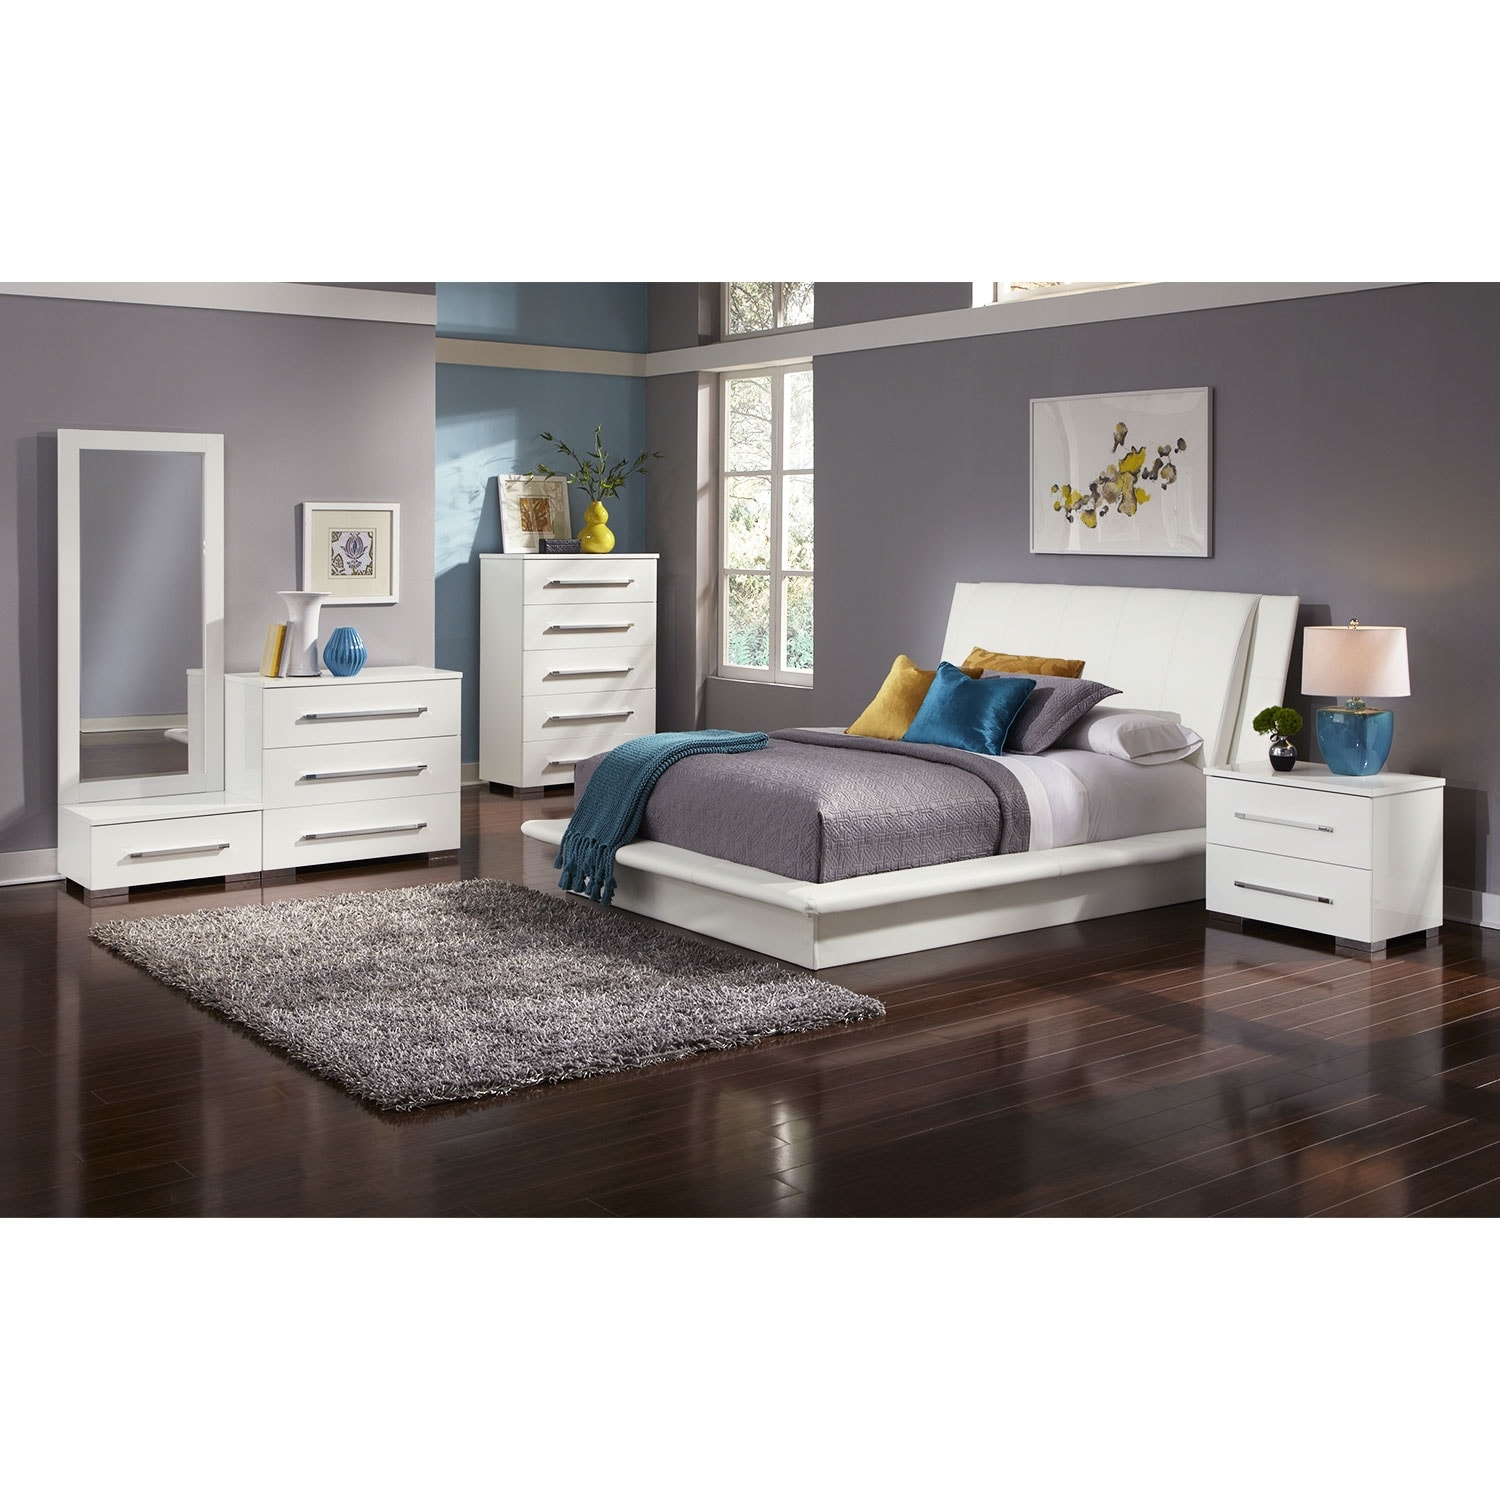 Dimora 7-Piece King Upholstered Bedroom Set - White